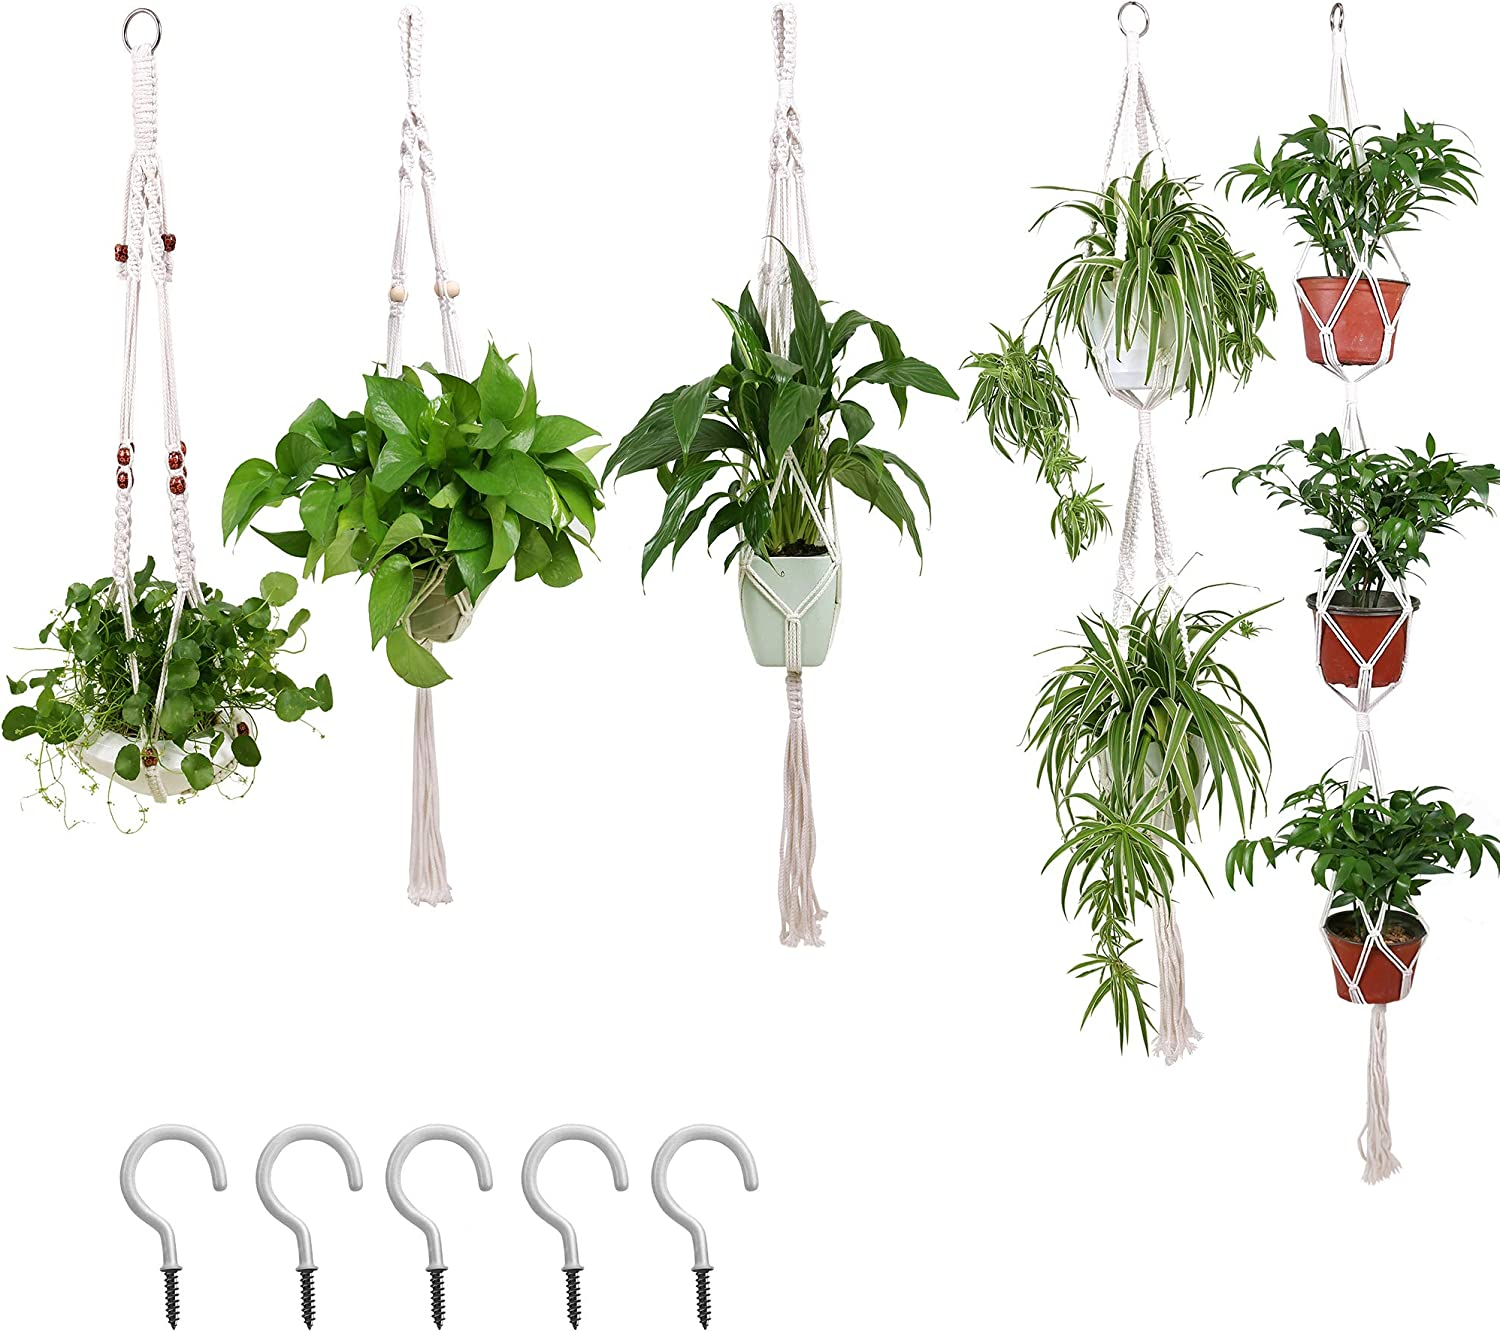 5 Pack Macrame Plant Hangers Indoor Outdoor Hanging Planters, Cotton Woven Plant Pot Basket Stand, Pots Patio Deck Ceiling Boho Home Birthday Décor with 5 Hooks